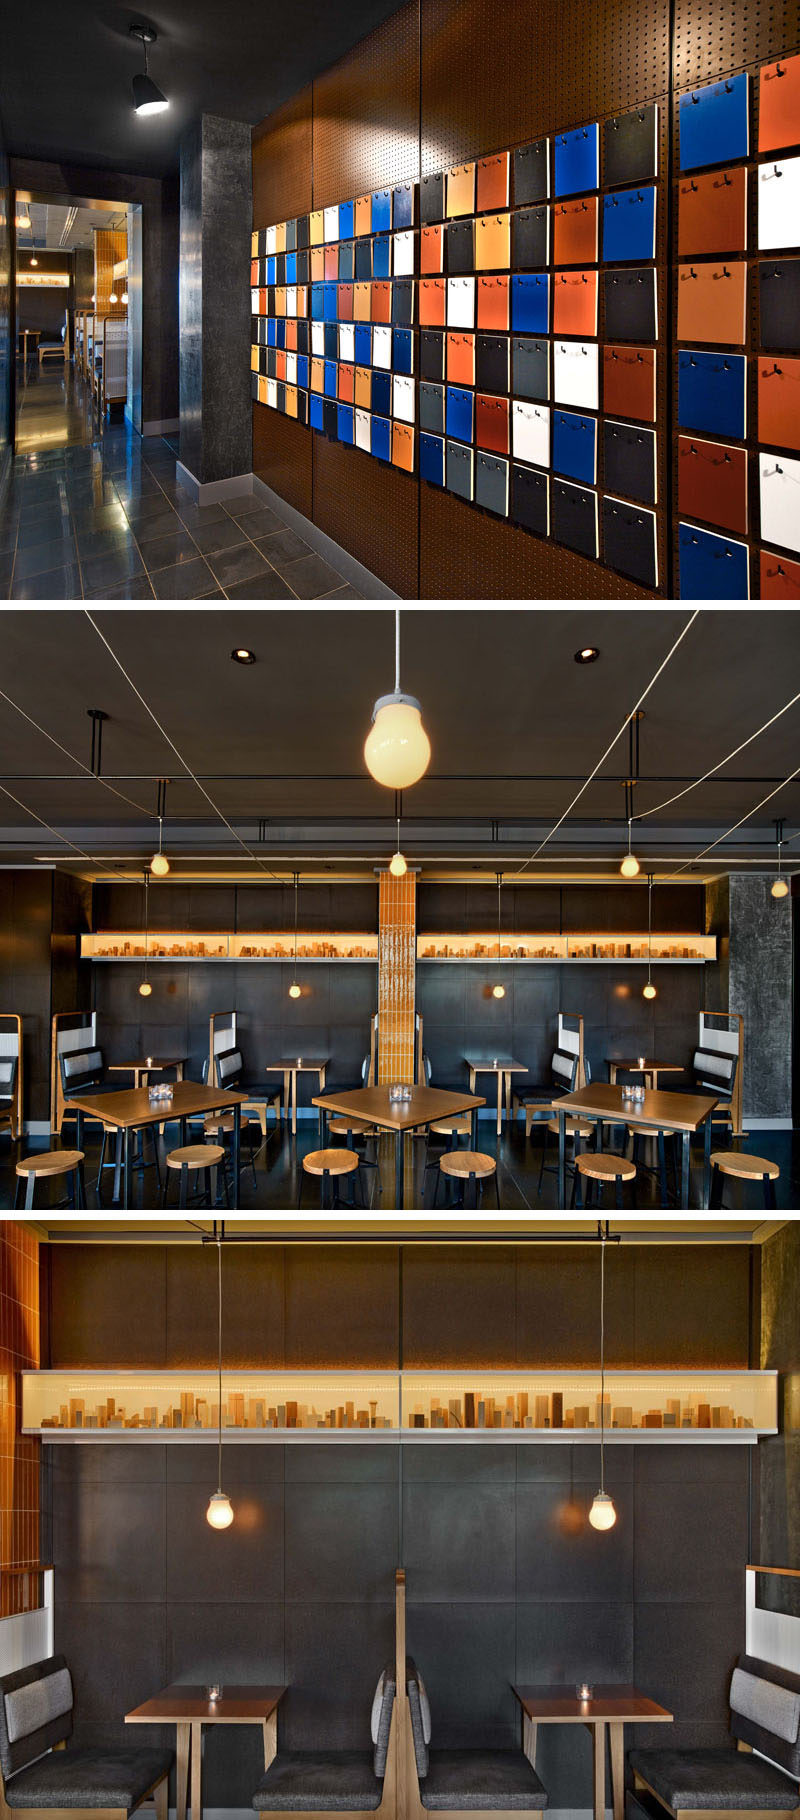 At the rooftop bar of the Arlo Hudson Square hotel in NYC, guests are greeted by an wall of wood planks, each painted two colors, that the guests can removed and replace, creating an ever-changing pattern of colors.